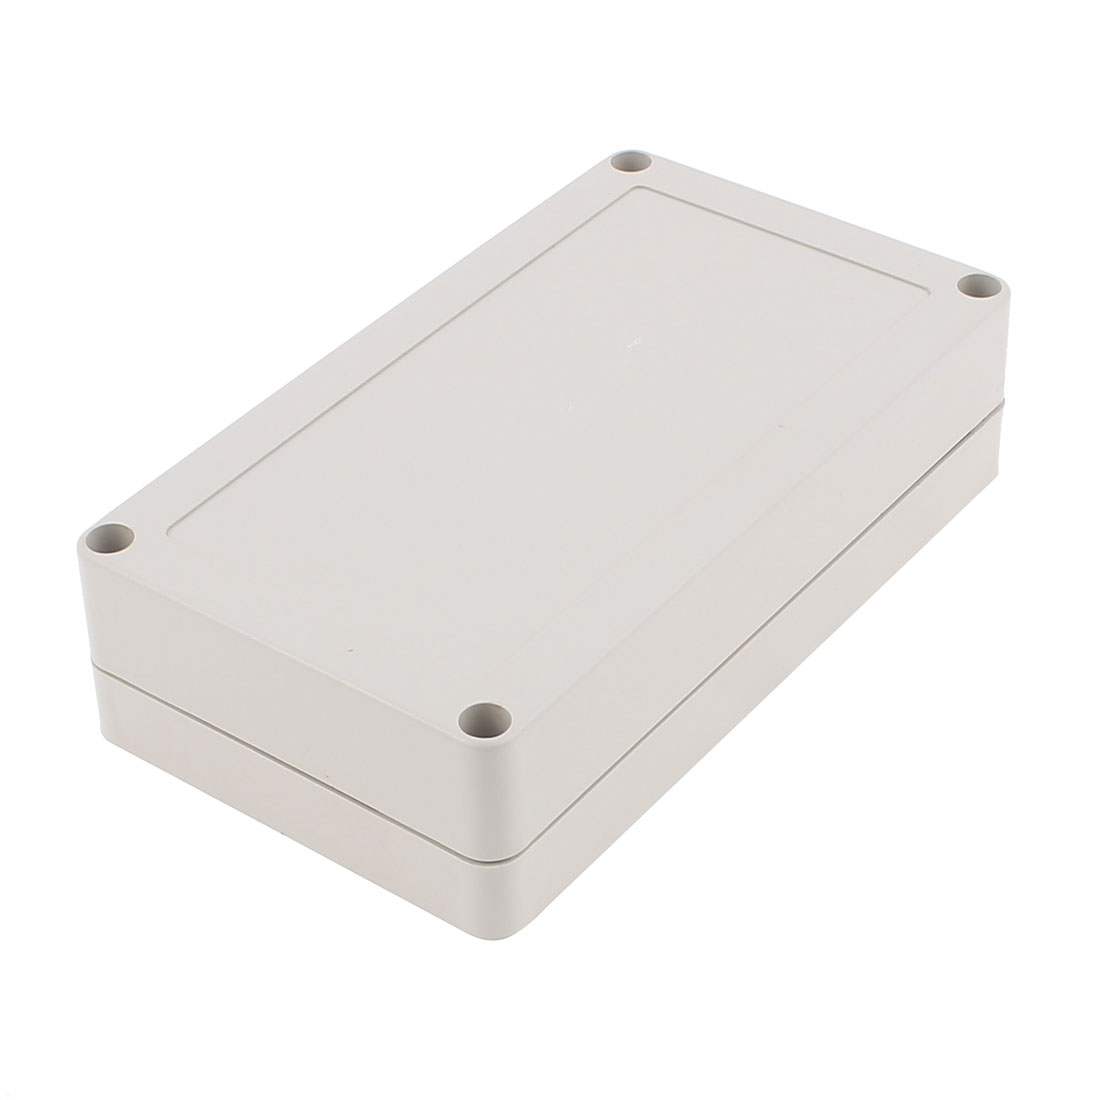 160 x 90 x 40mm Dustproof IP65 Junction Box Terminal Connecting Box Enclosure